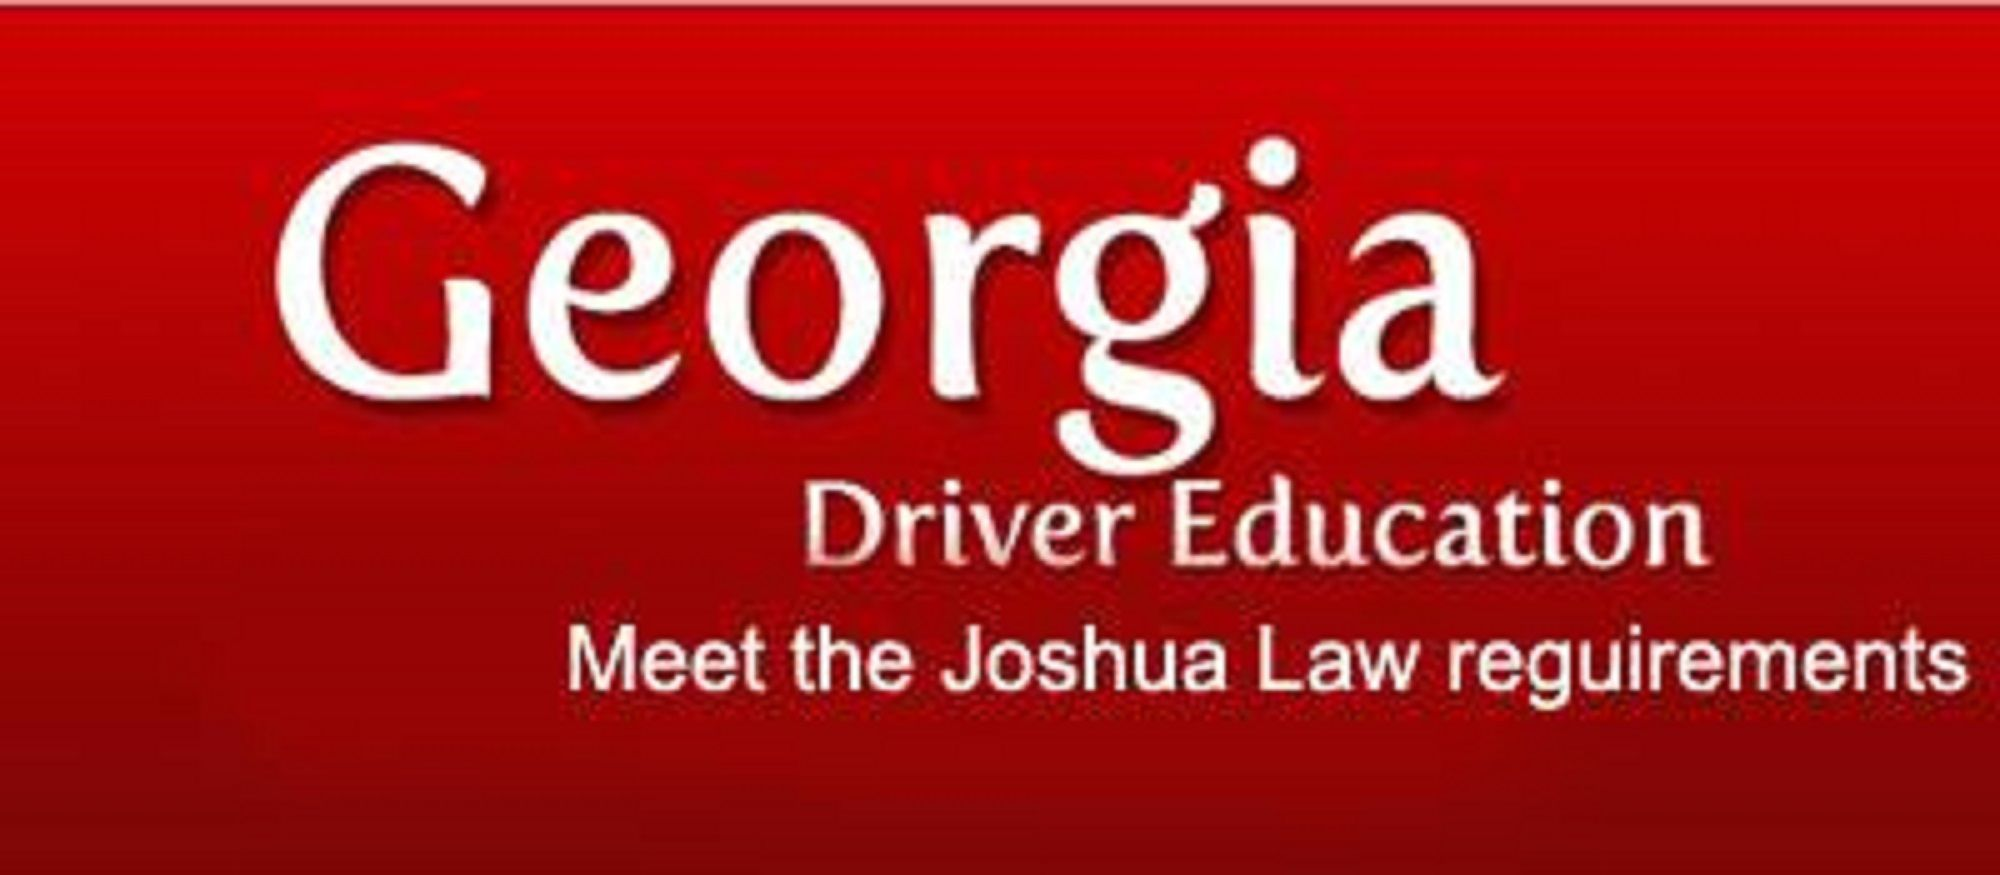 Take Our Dds Licensed Online Driver Education Course Drivers Education Content Insurance Education